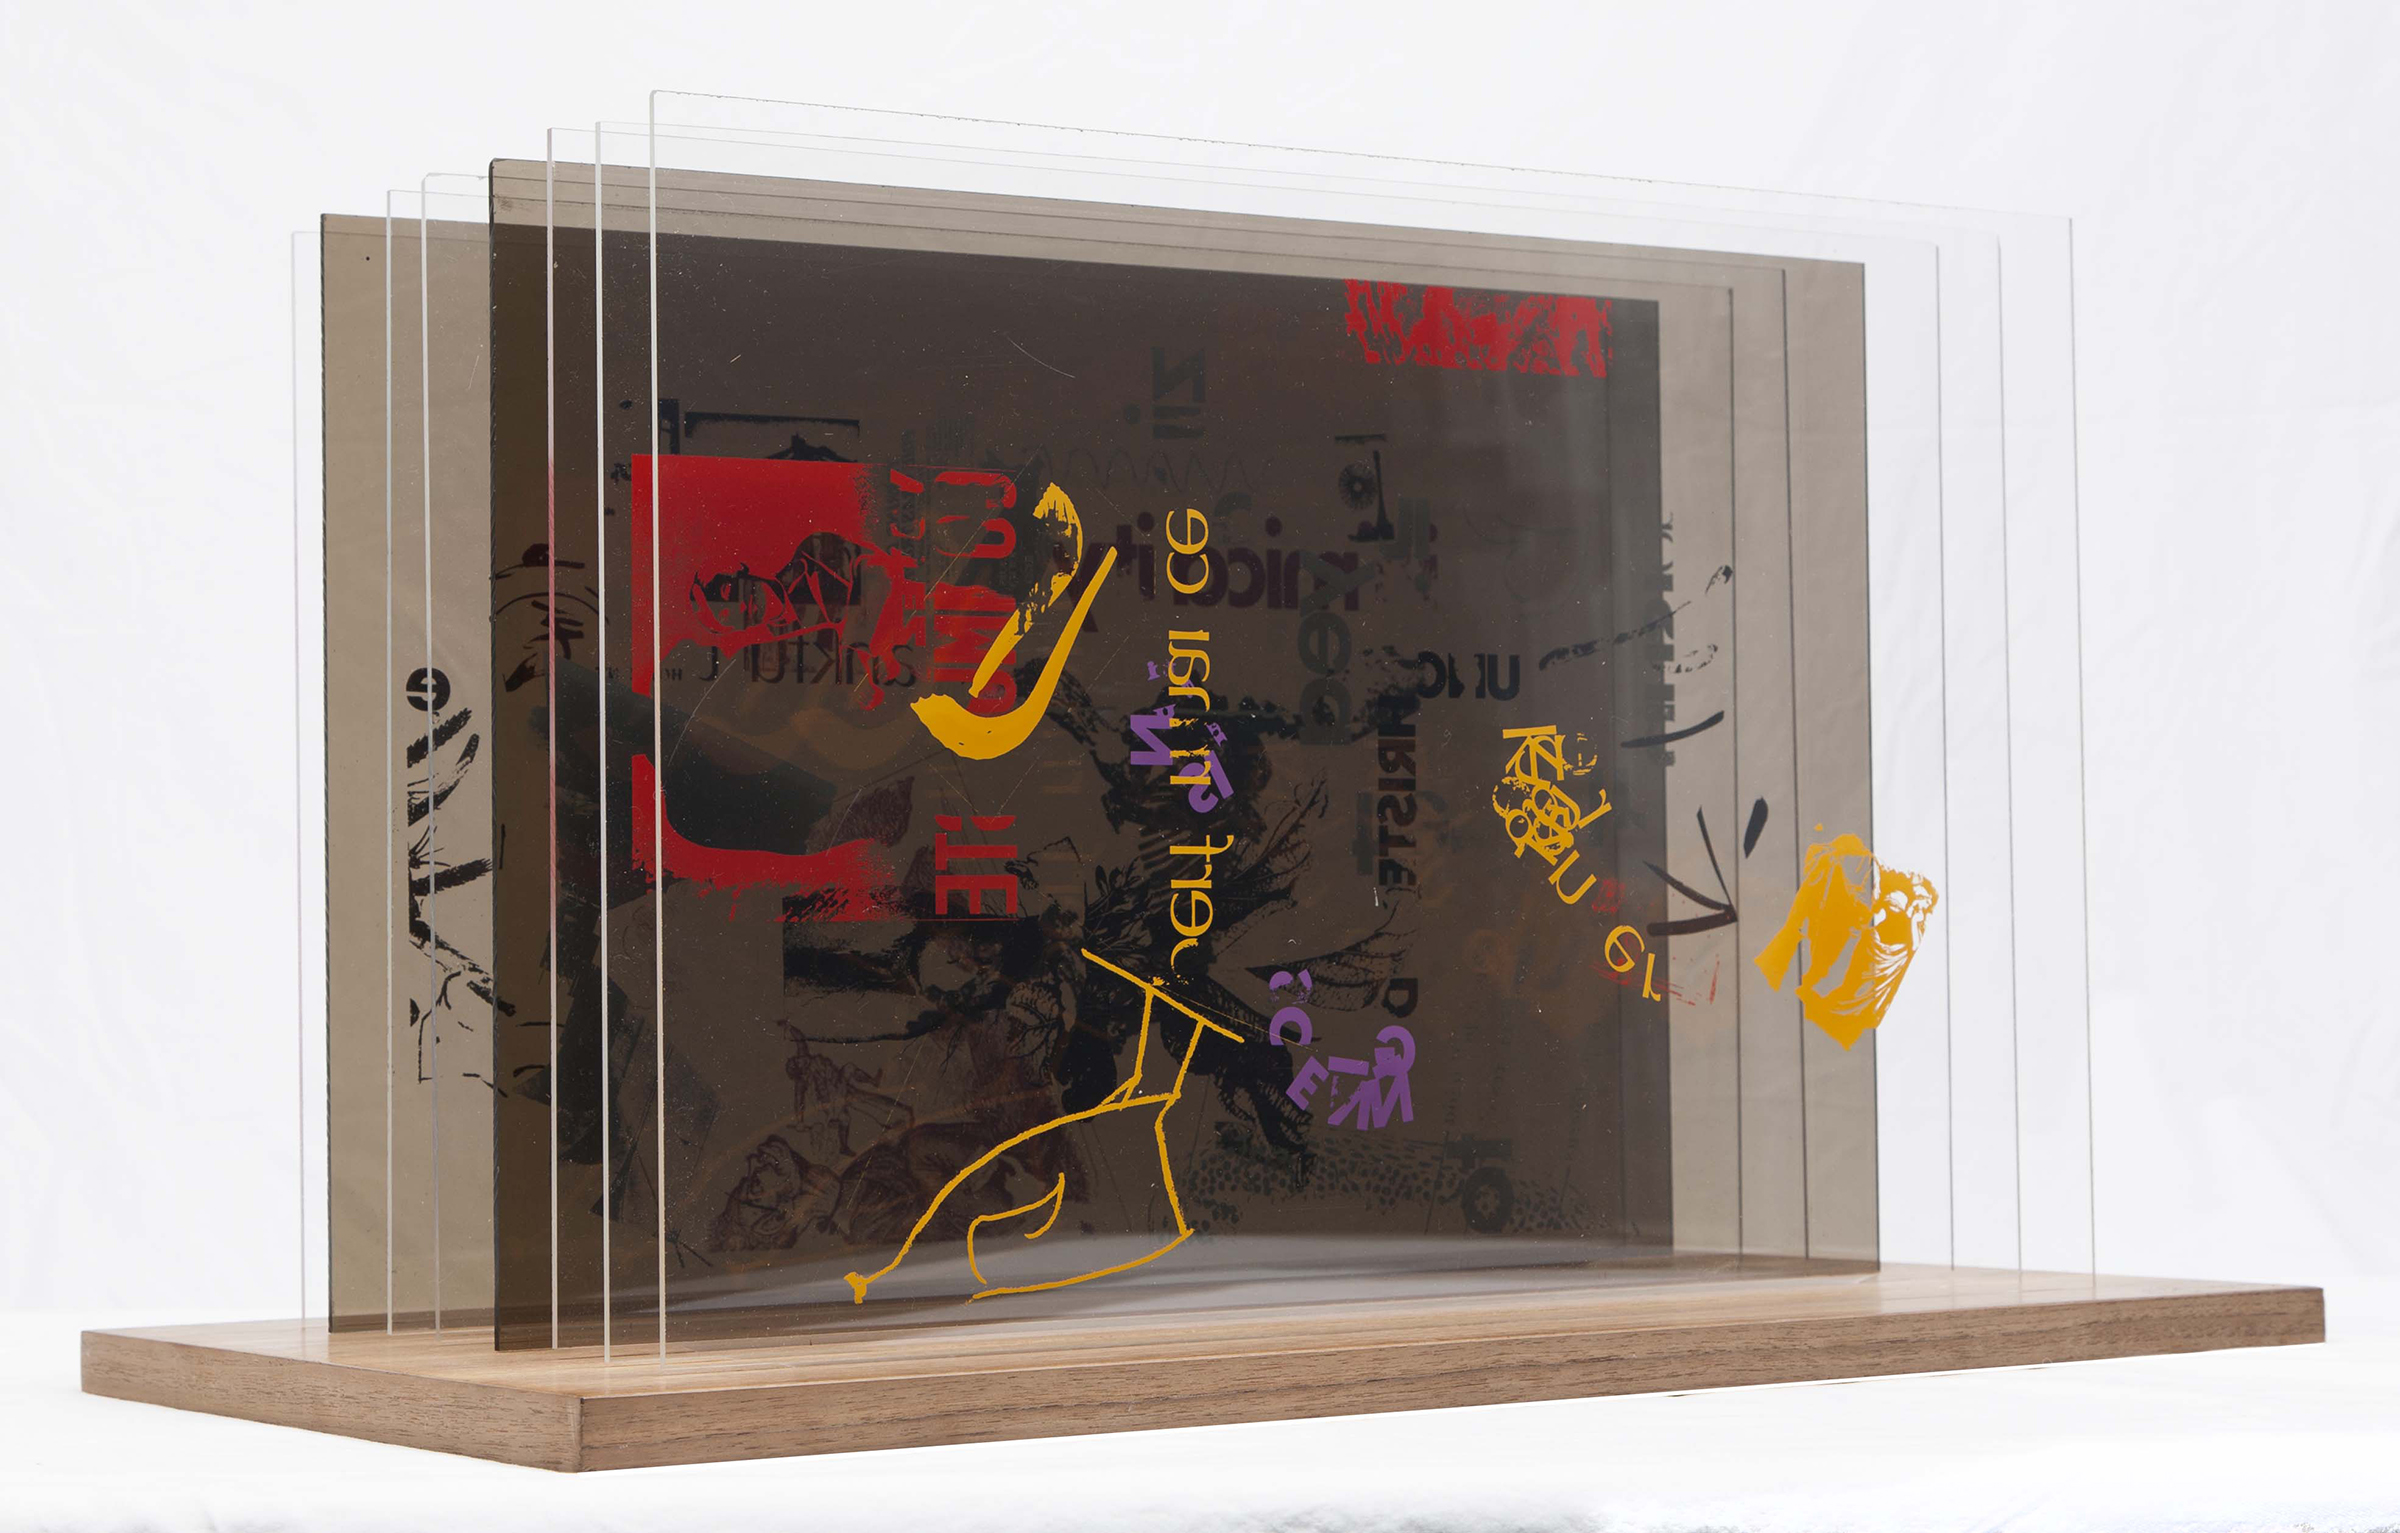 John Cage (American, 1912–1992) and Calvin Sumsion, Not Wanting to Say Anything About Marcel, Plexigram VI, 1969. Screenprint on acrylic panels with wooden base. Purchased with funds from the National Endowment for the Arts, Associated Students of the University of Utah, and the Charles E. Merrill Trust.